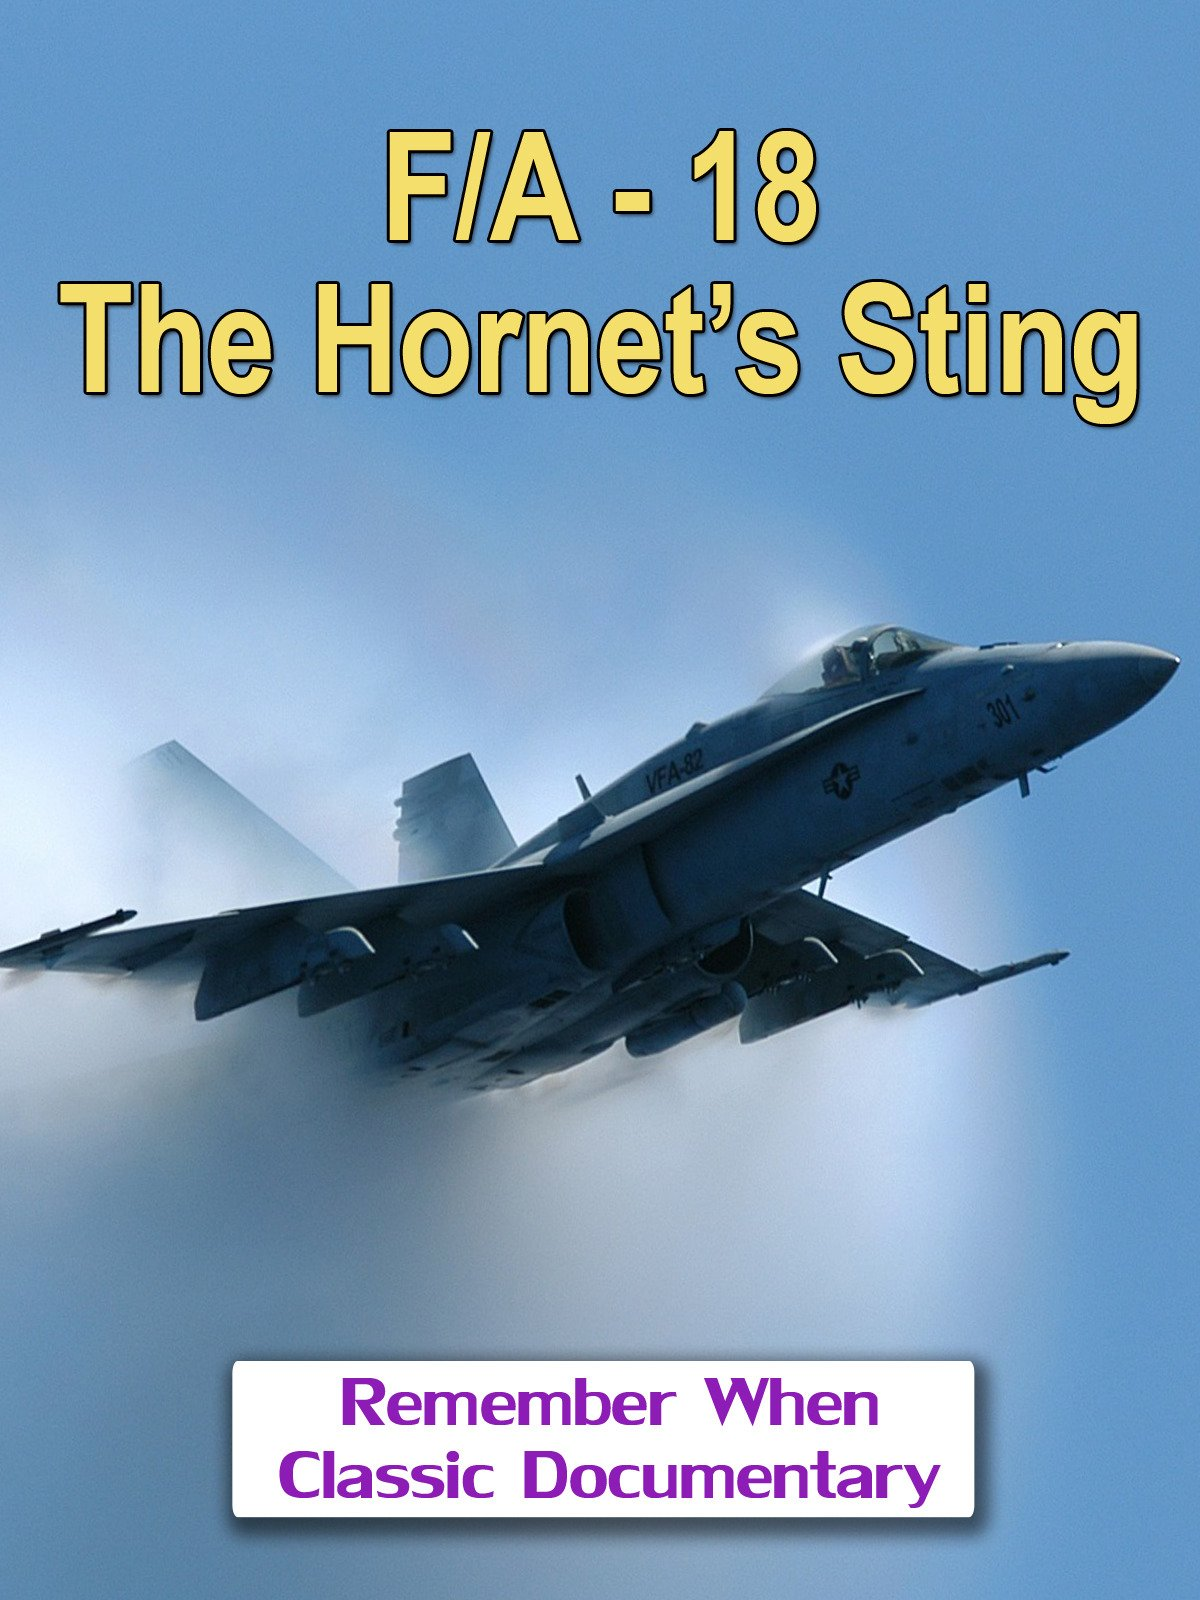 F/A-18, The Hornet's Sting